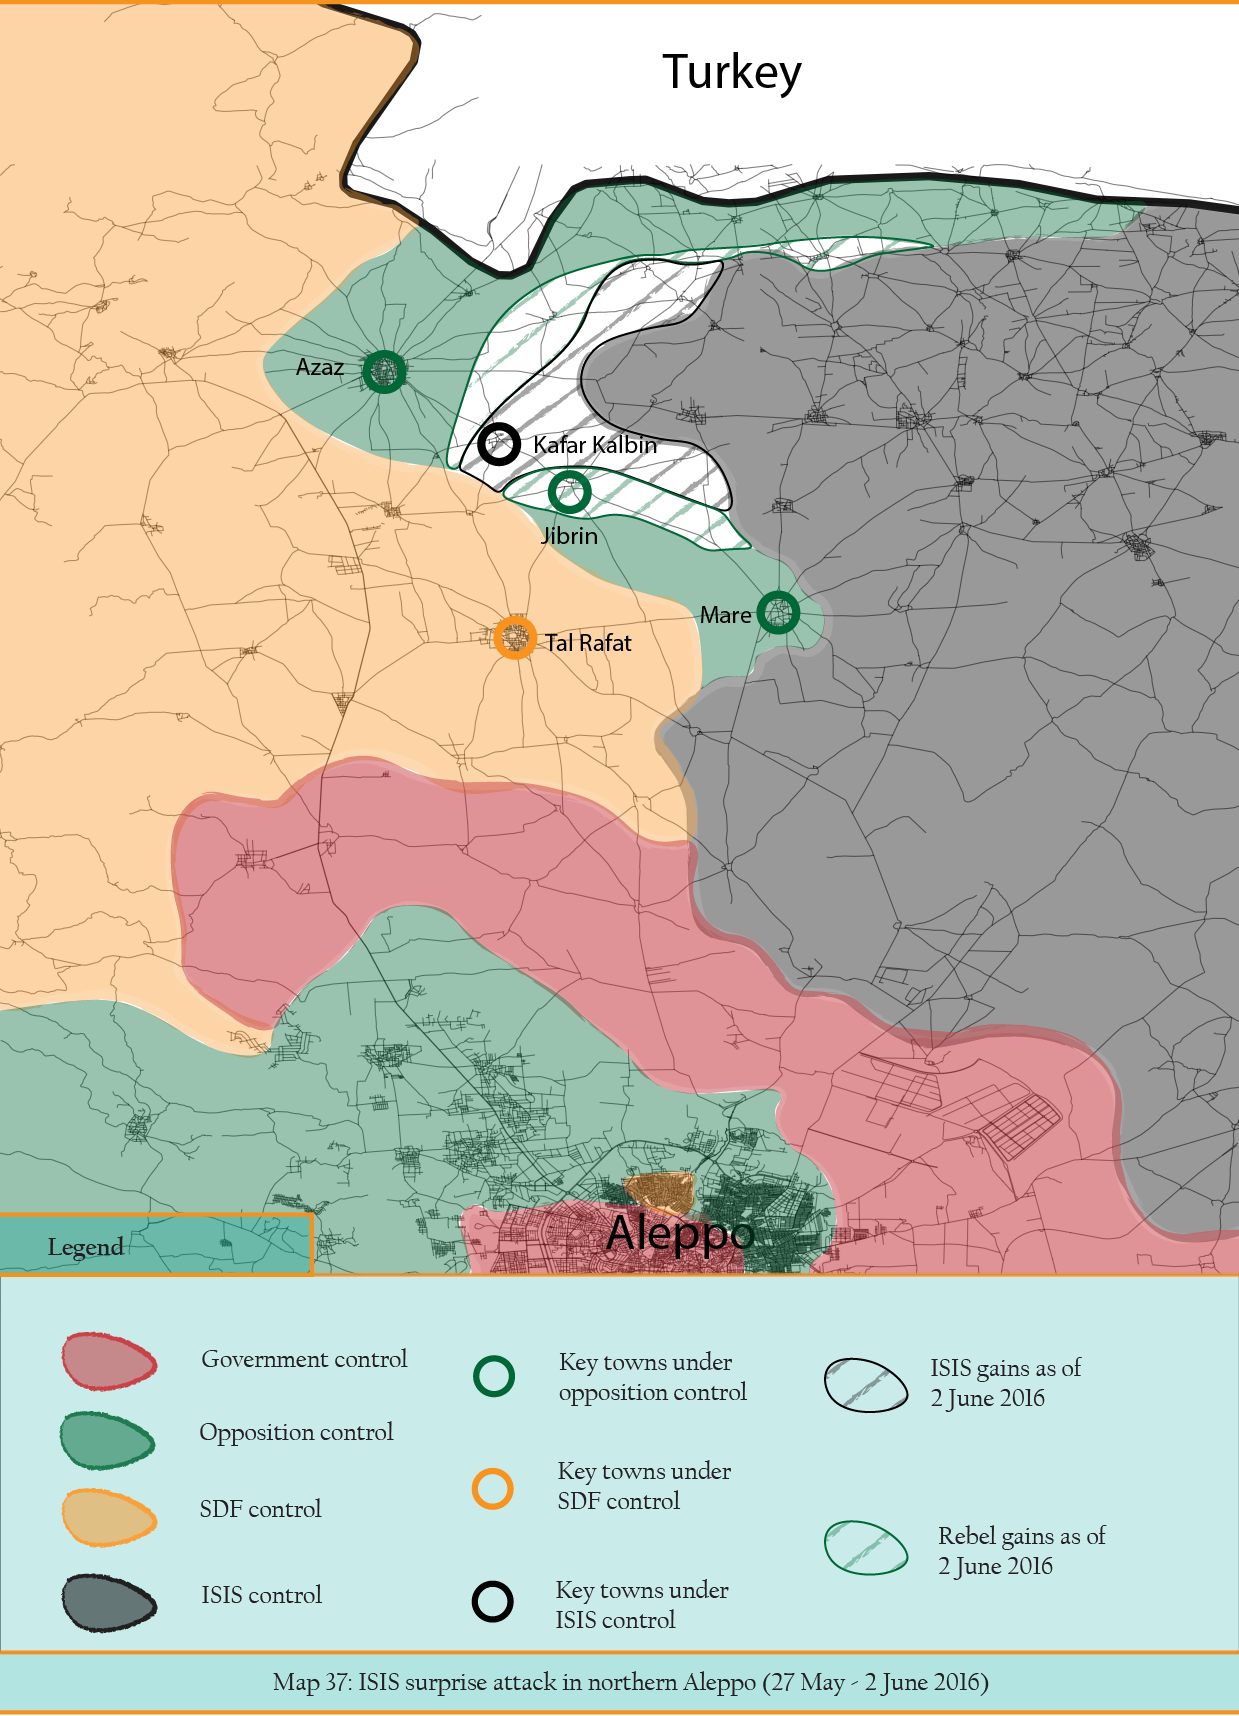 MAP 37 - ISIS surprise attack in northern Aleppo.